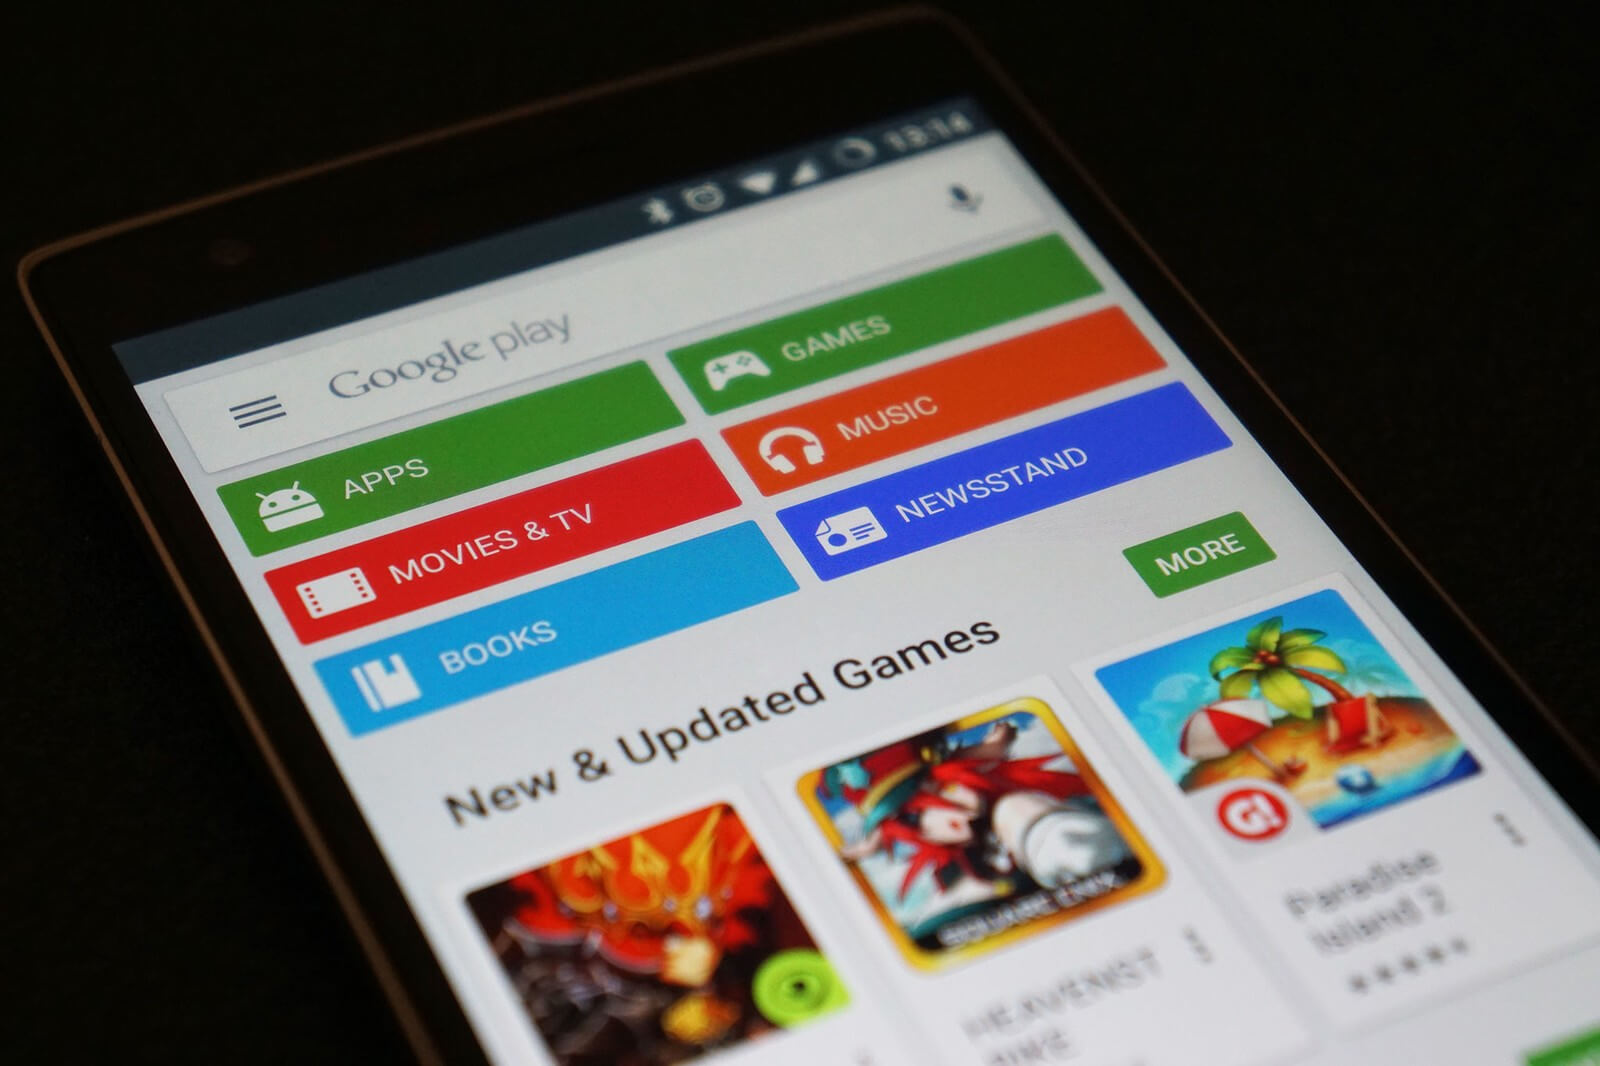 Google is tweaking the Play Store's app rating system to favor